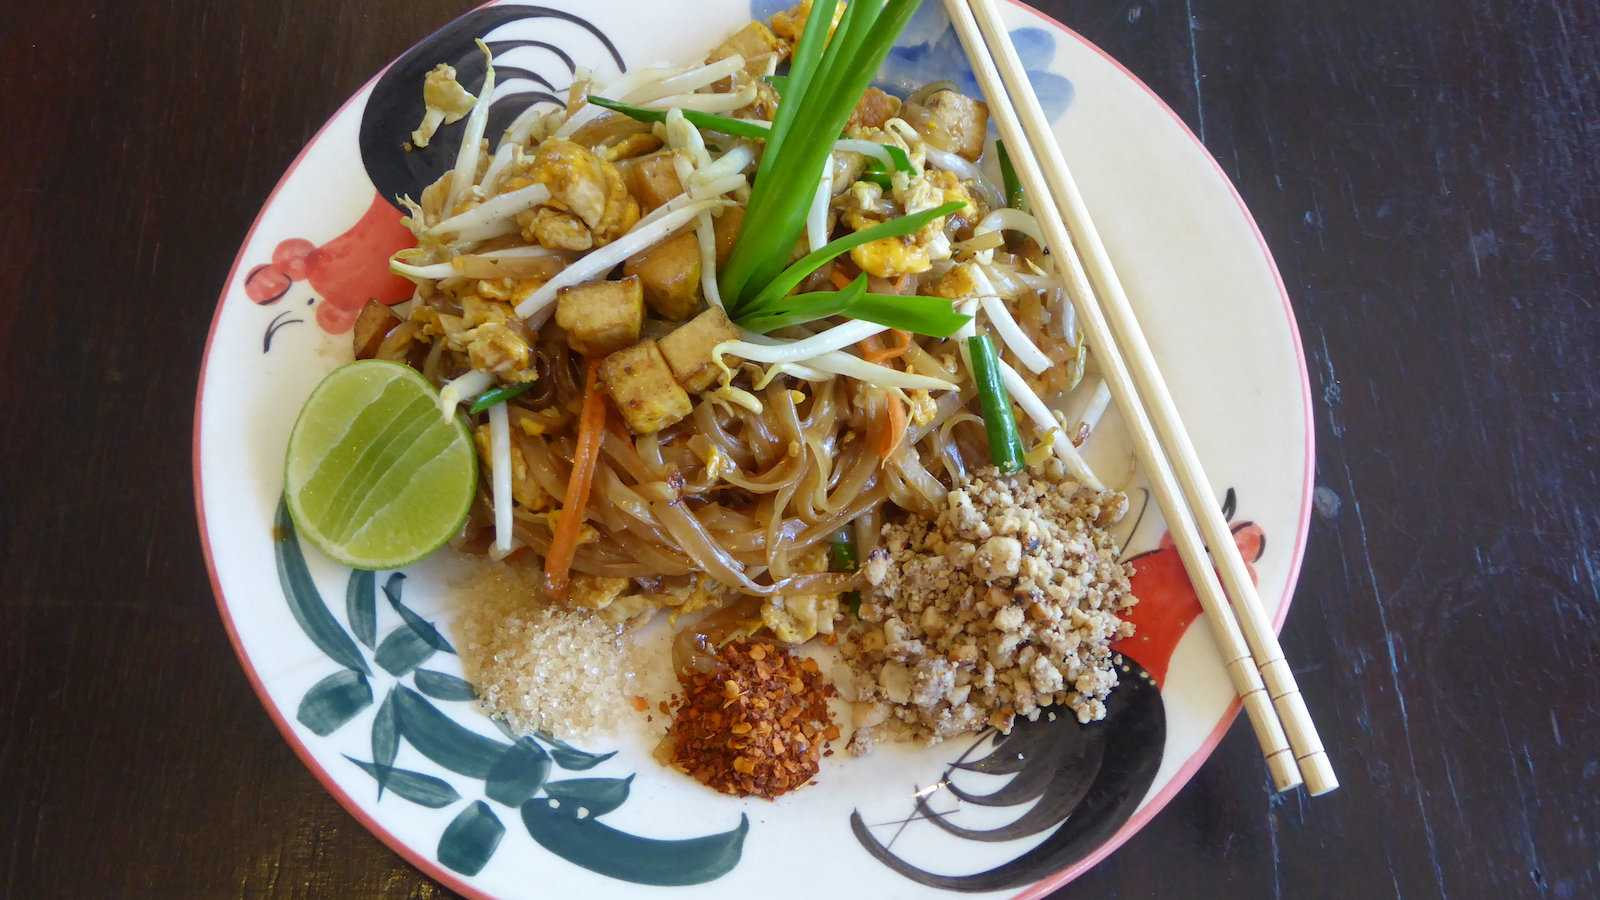 Thailand's national dish Pad Thai is delicious and easy to find all over the country